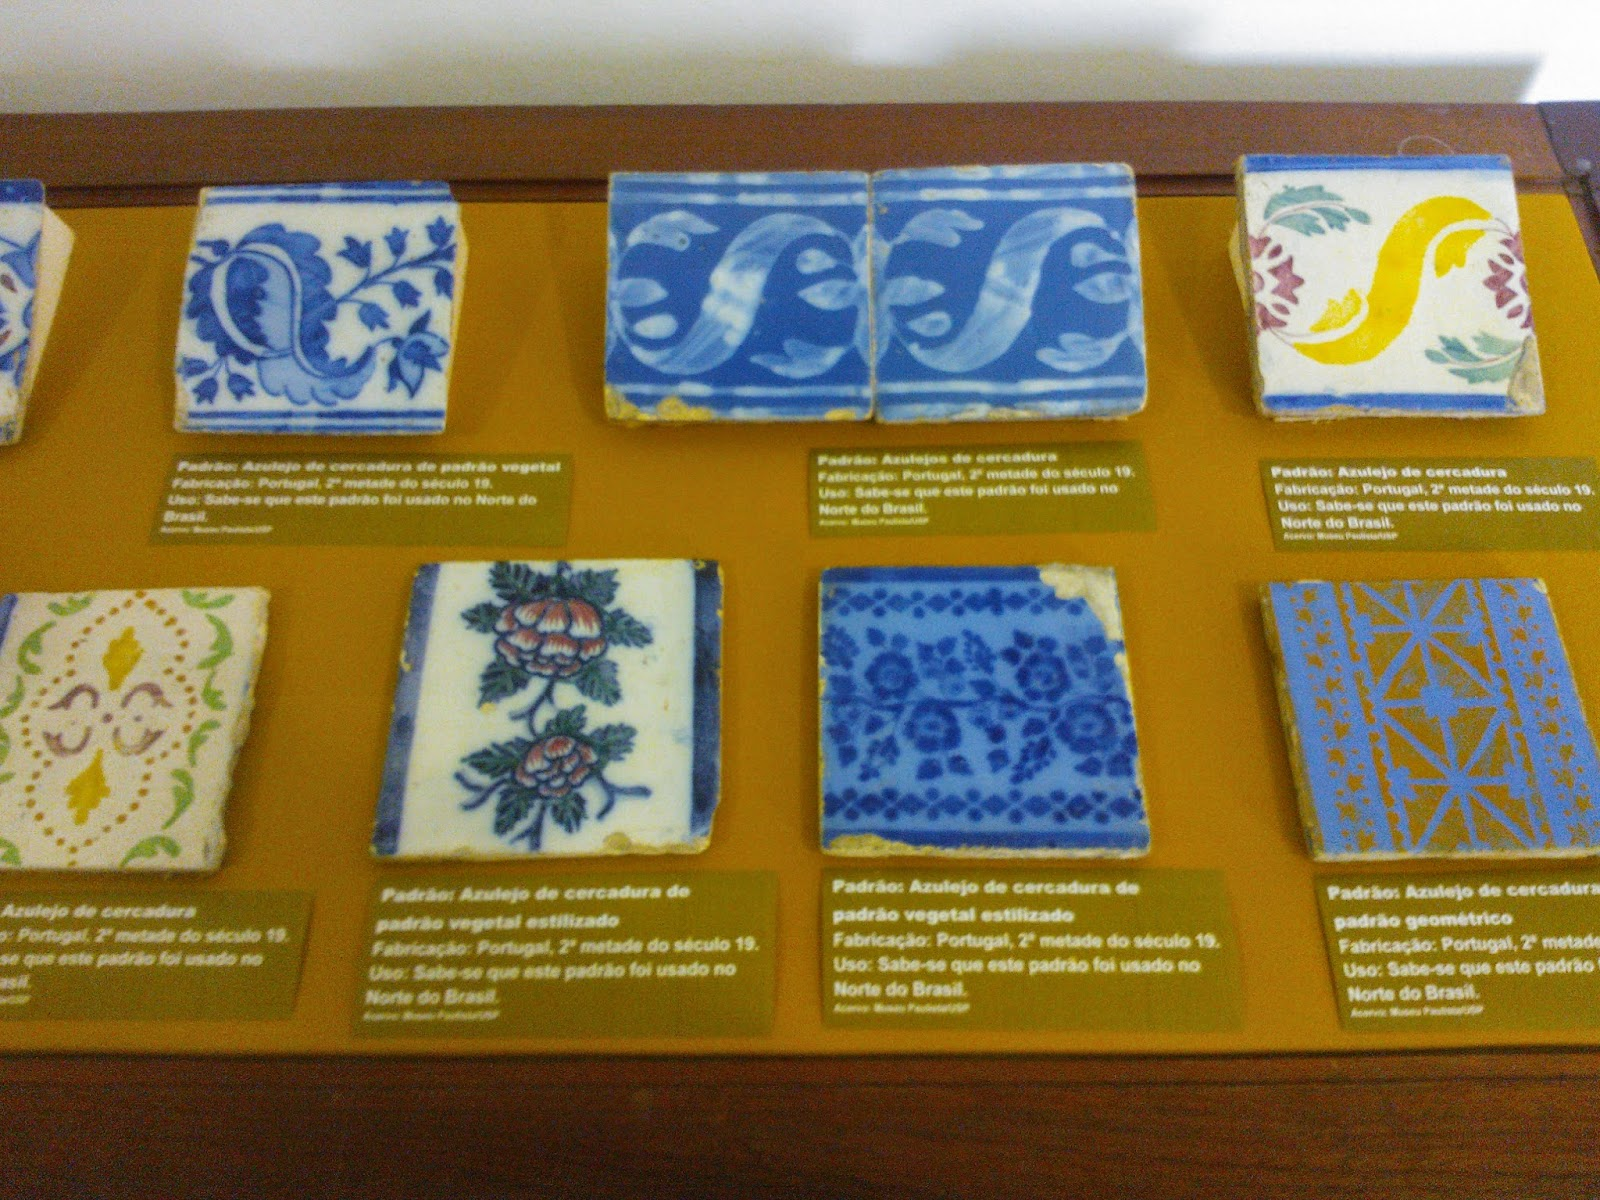 Azulejos portugueses no acervo do Museu Republicano, Itu-SP